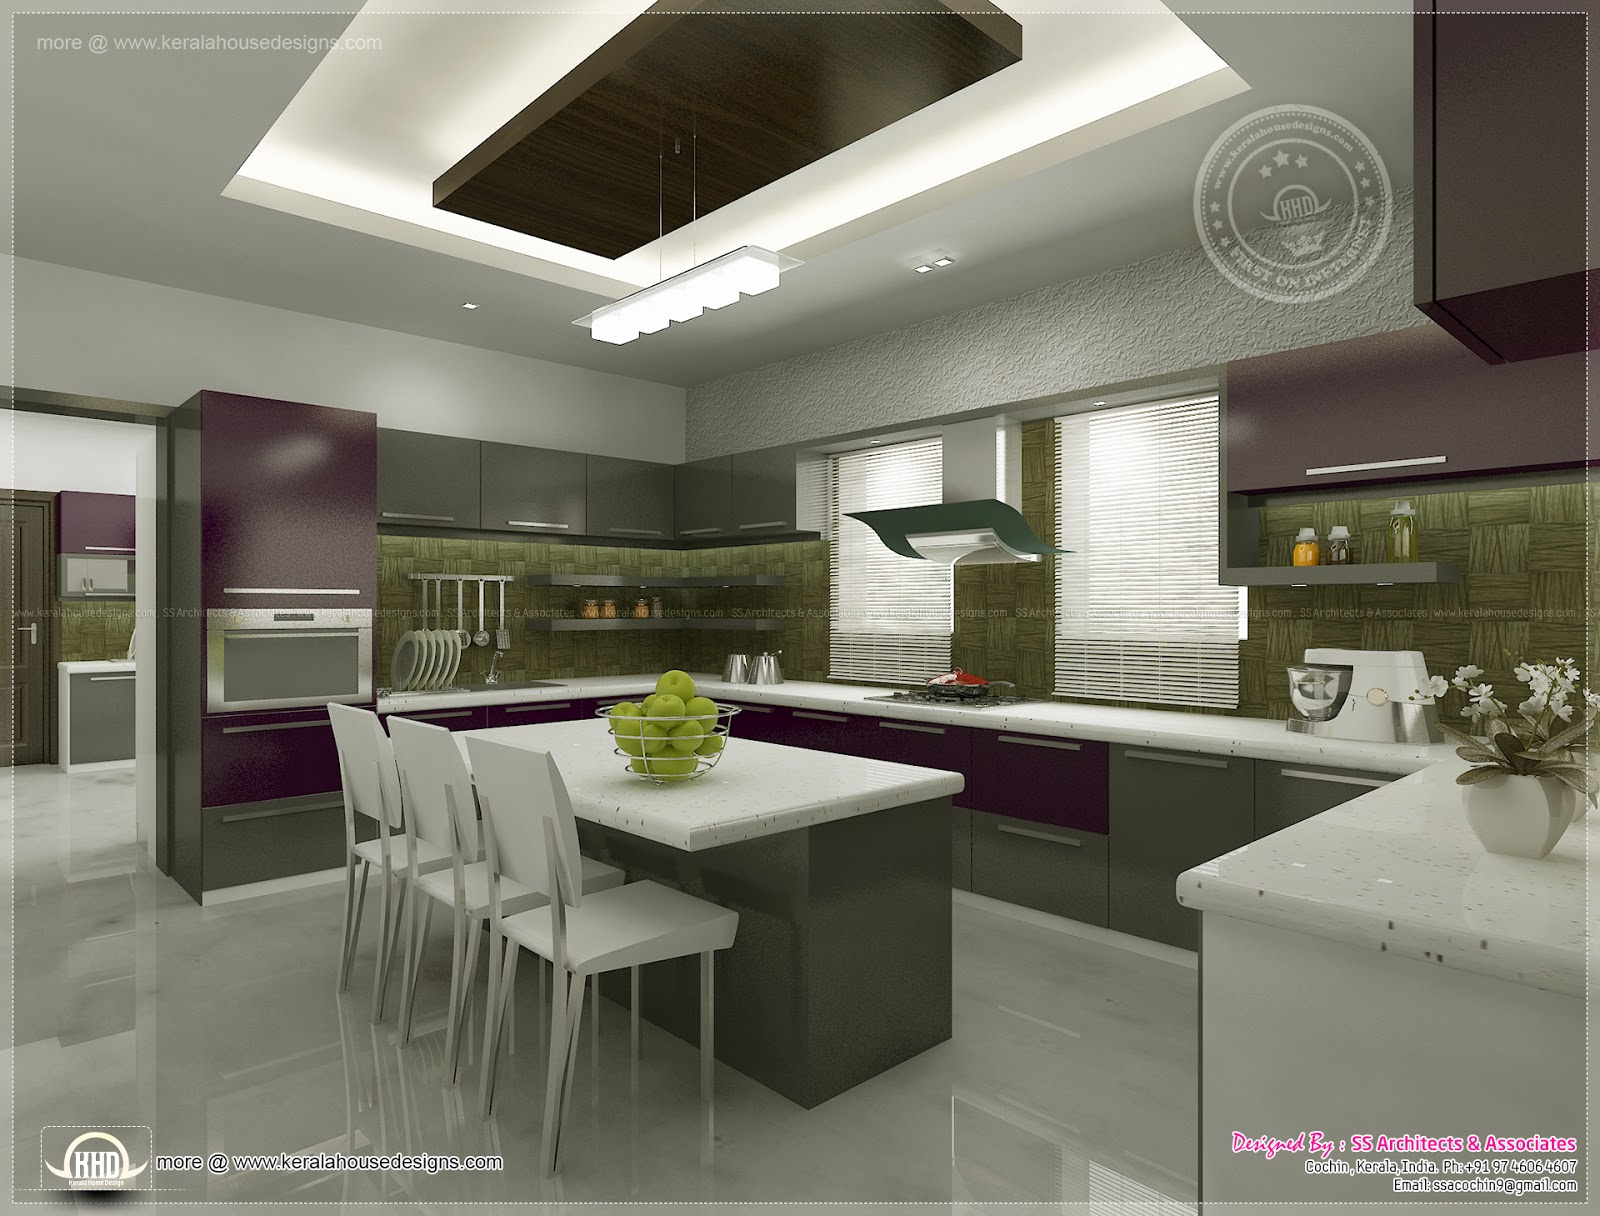 Kitchen interior views by ss architects cochin kerala for House plans with interior pictures